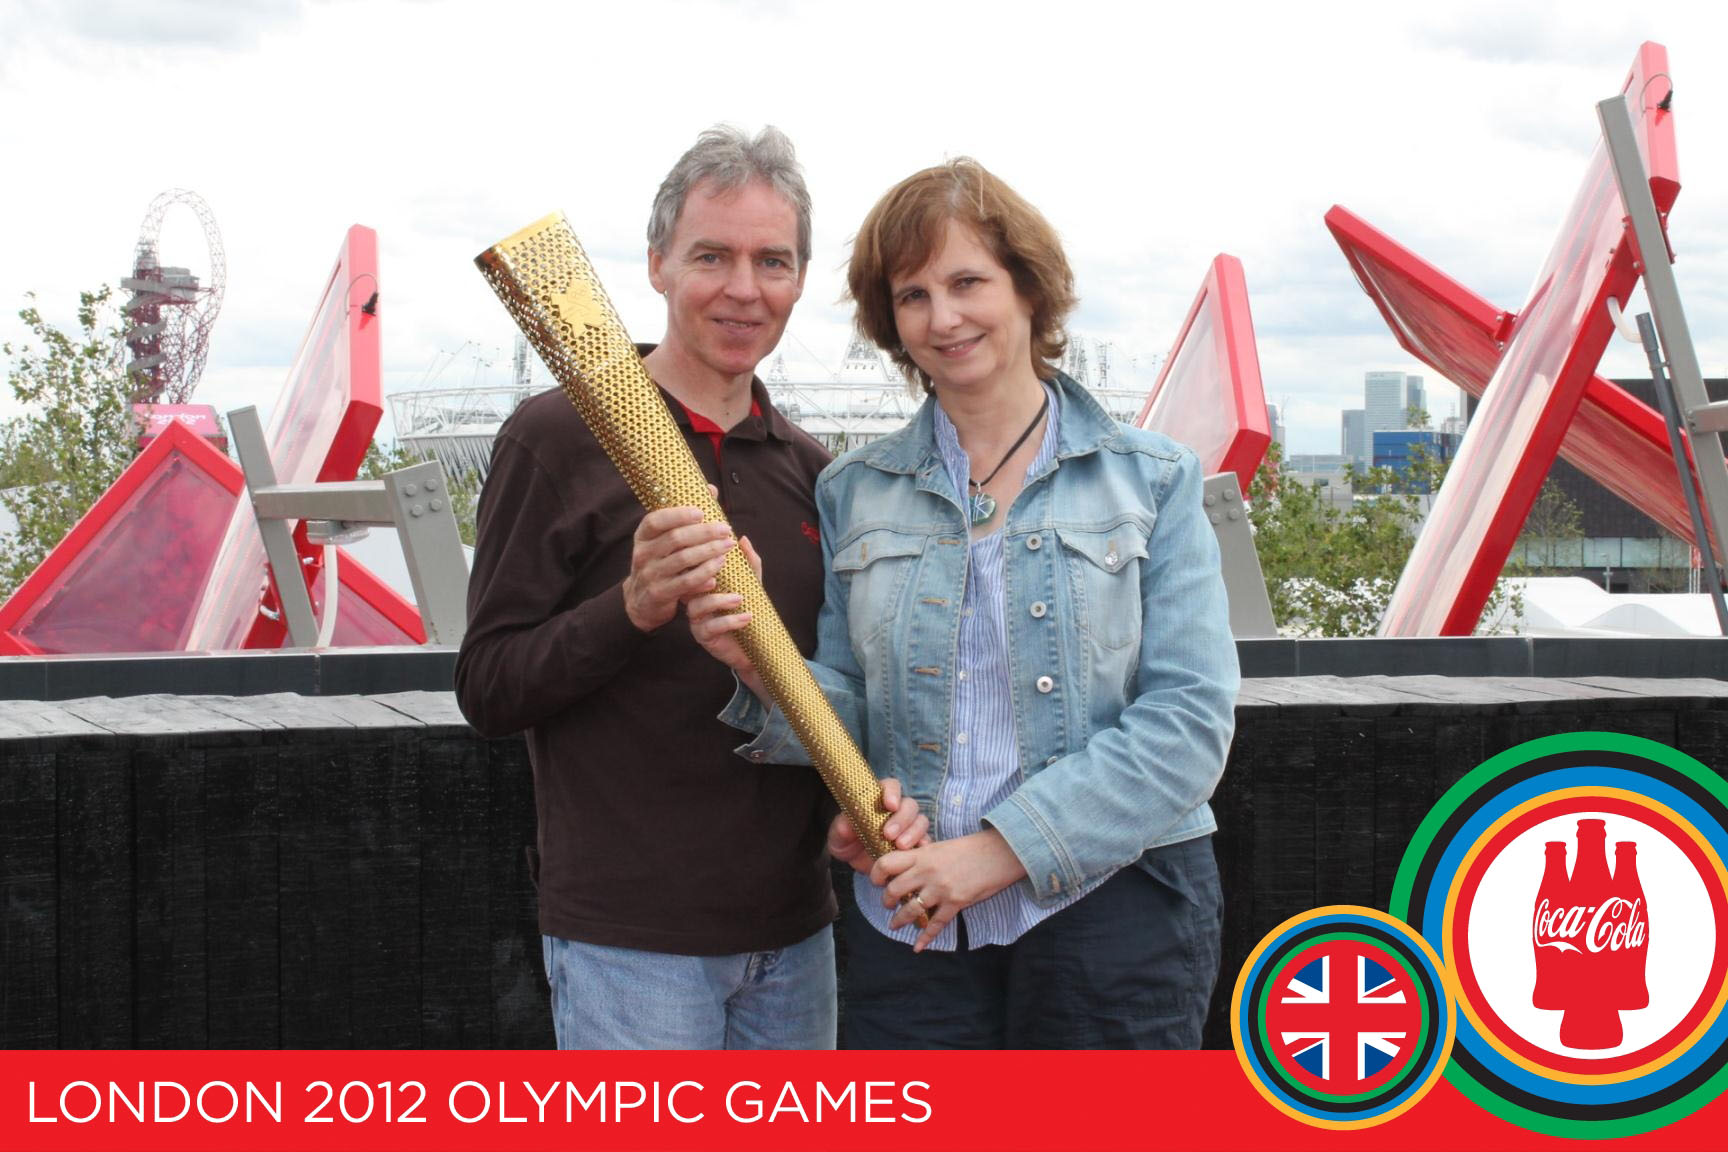 Couple posing for photo with Olympic torch